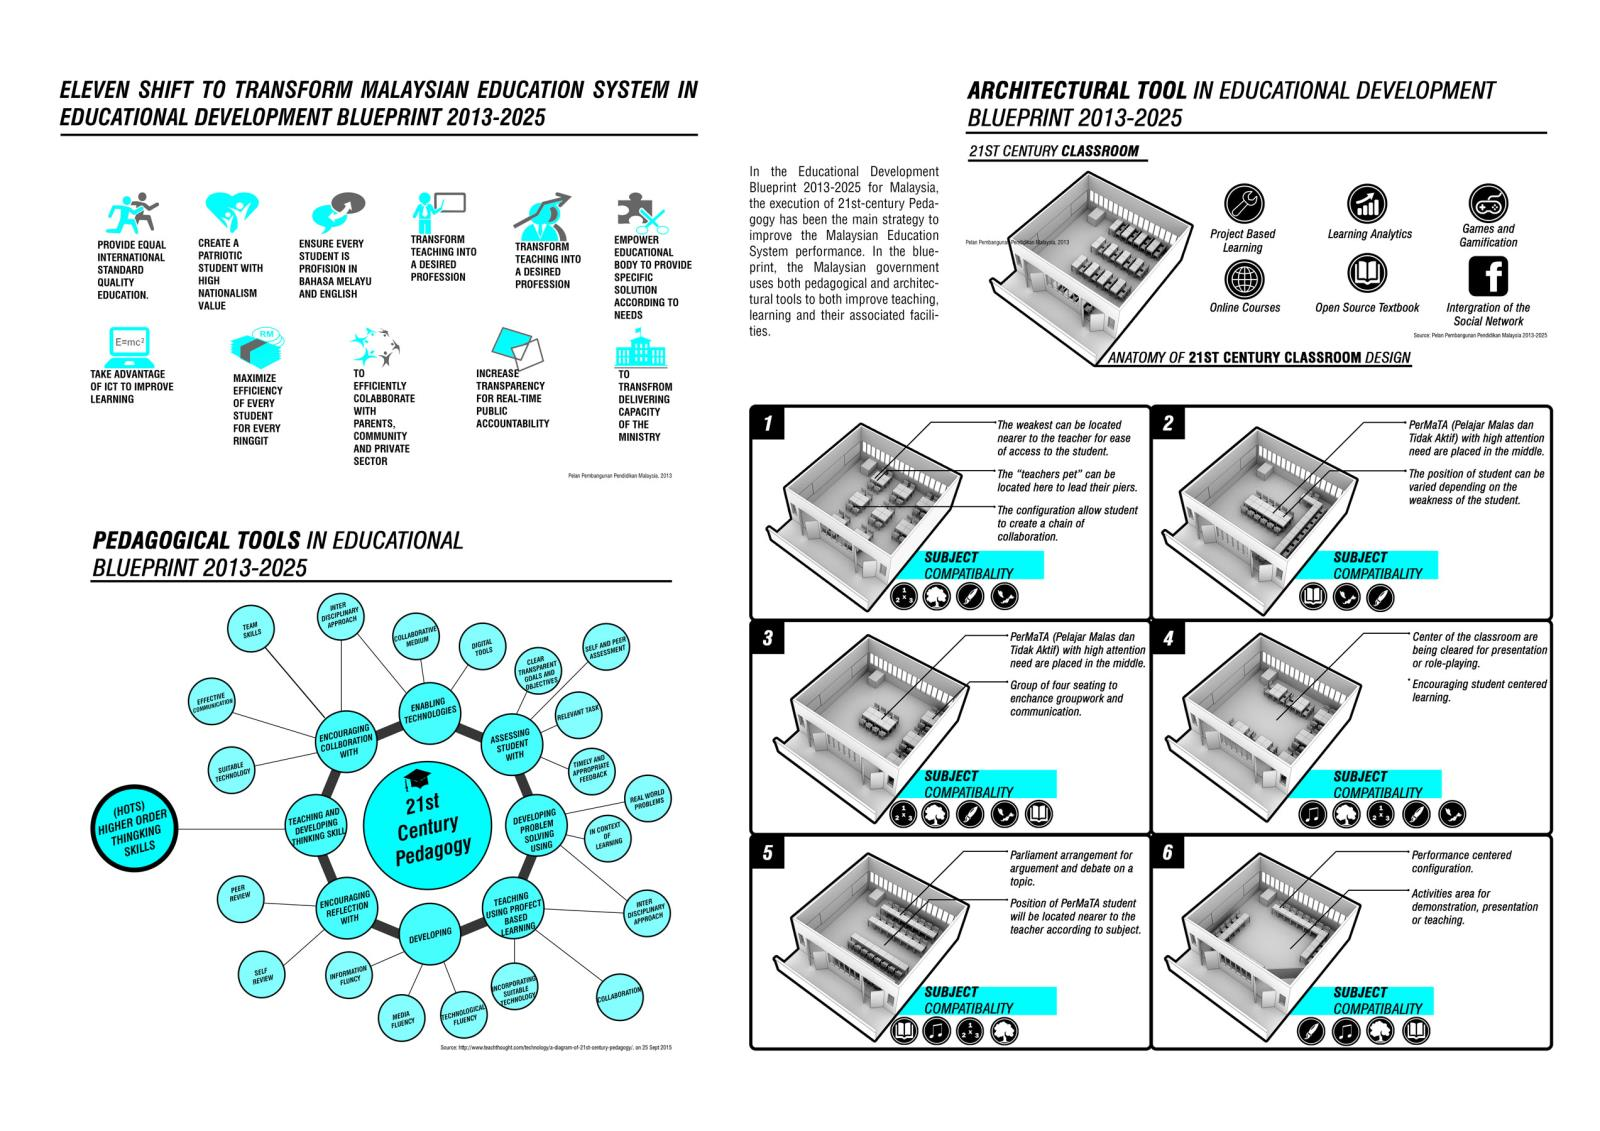 Presidents medals proposed built pedagogy of the 21st century of content synopsis of the educational development blueprint 2013 2025 showing the relationship pedagogical and architectural approach of the blueprint malvernweather Images